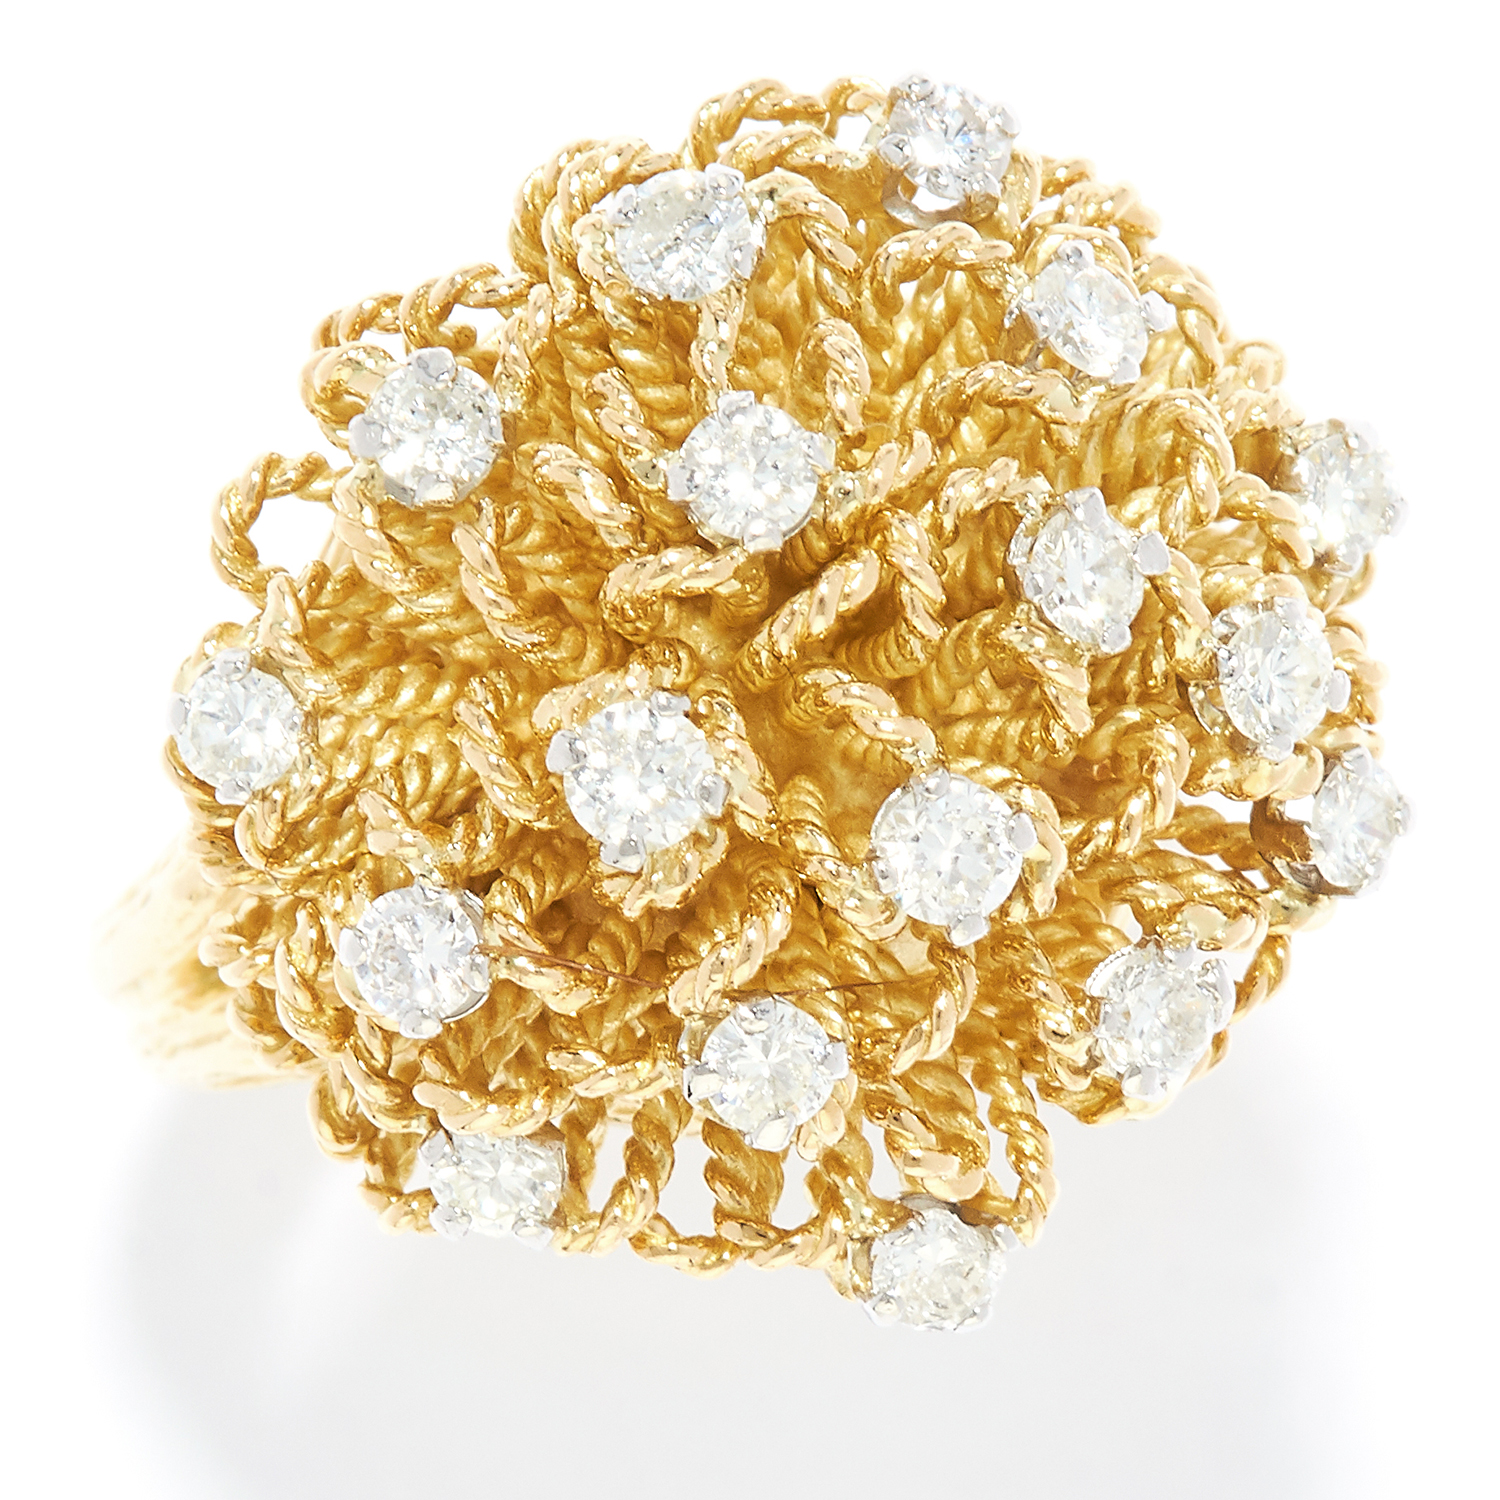 Los 59 - DIAMOND DRESS RING, KUTCHINSKY in 18ct yellow gold, the textured gold is set with round cut